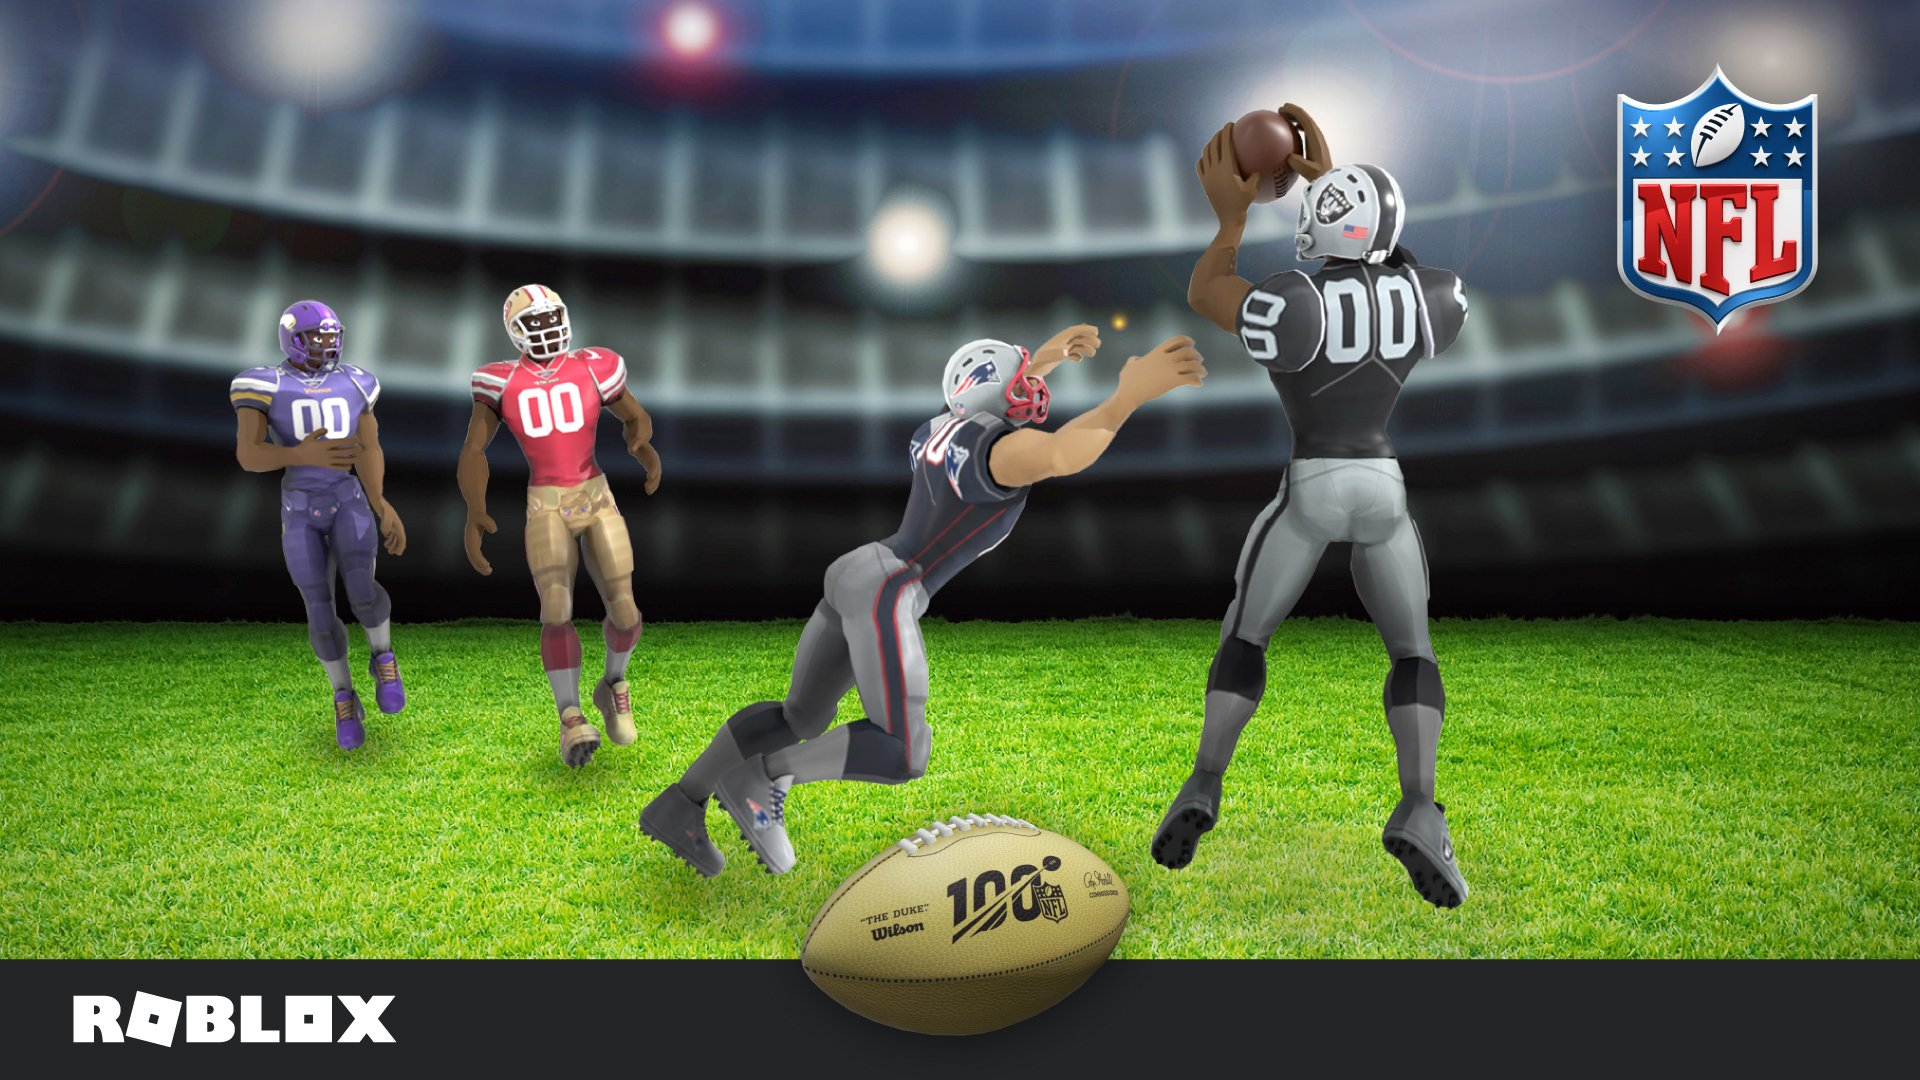 Roblox Hits The Gridiron With Nfl Avatar Uniforms And A Promo Code